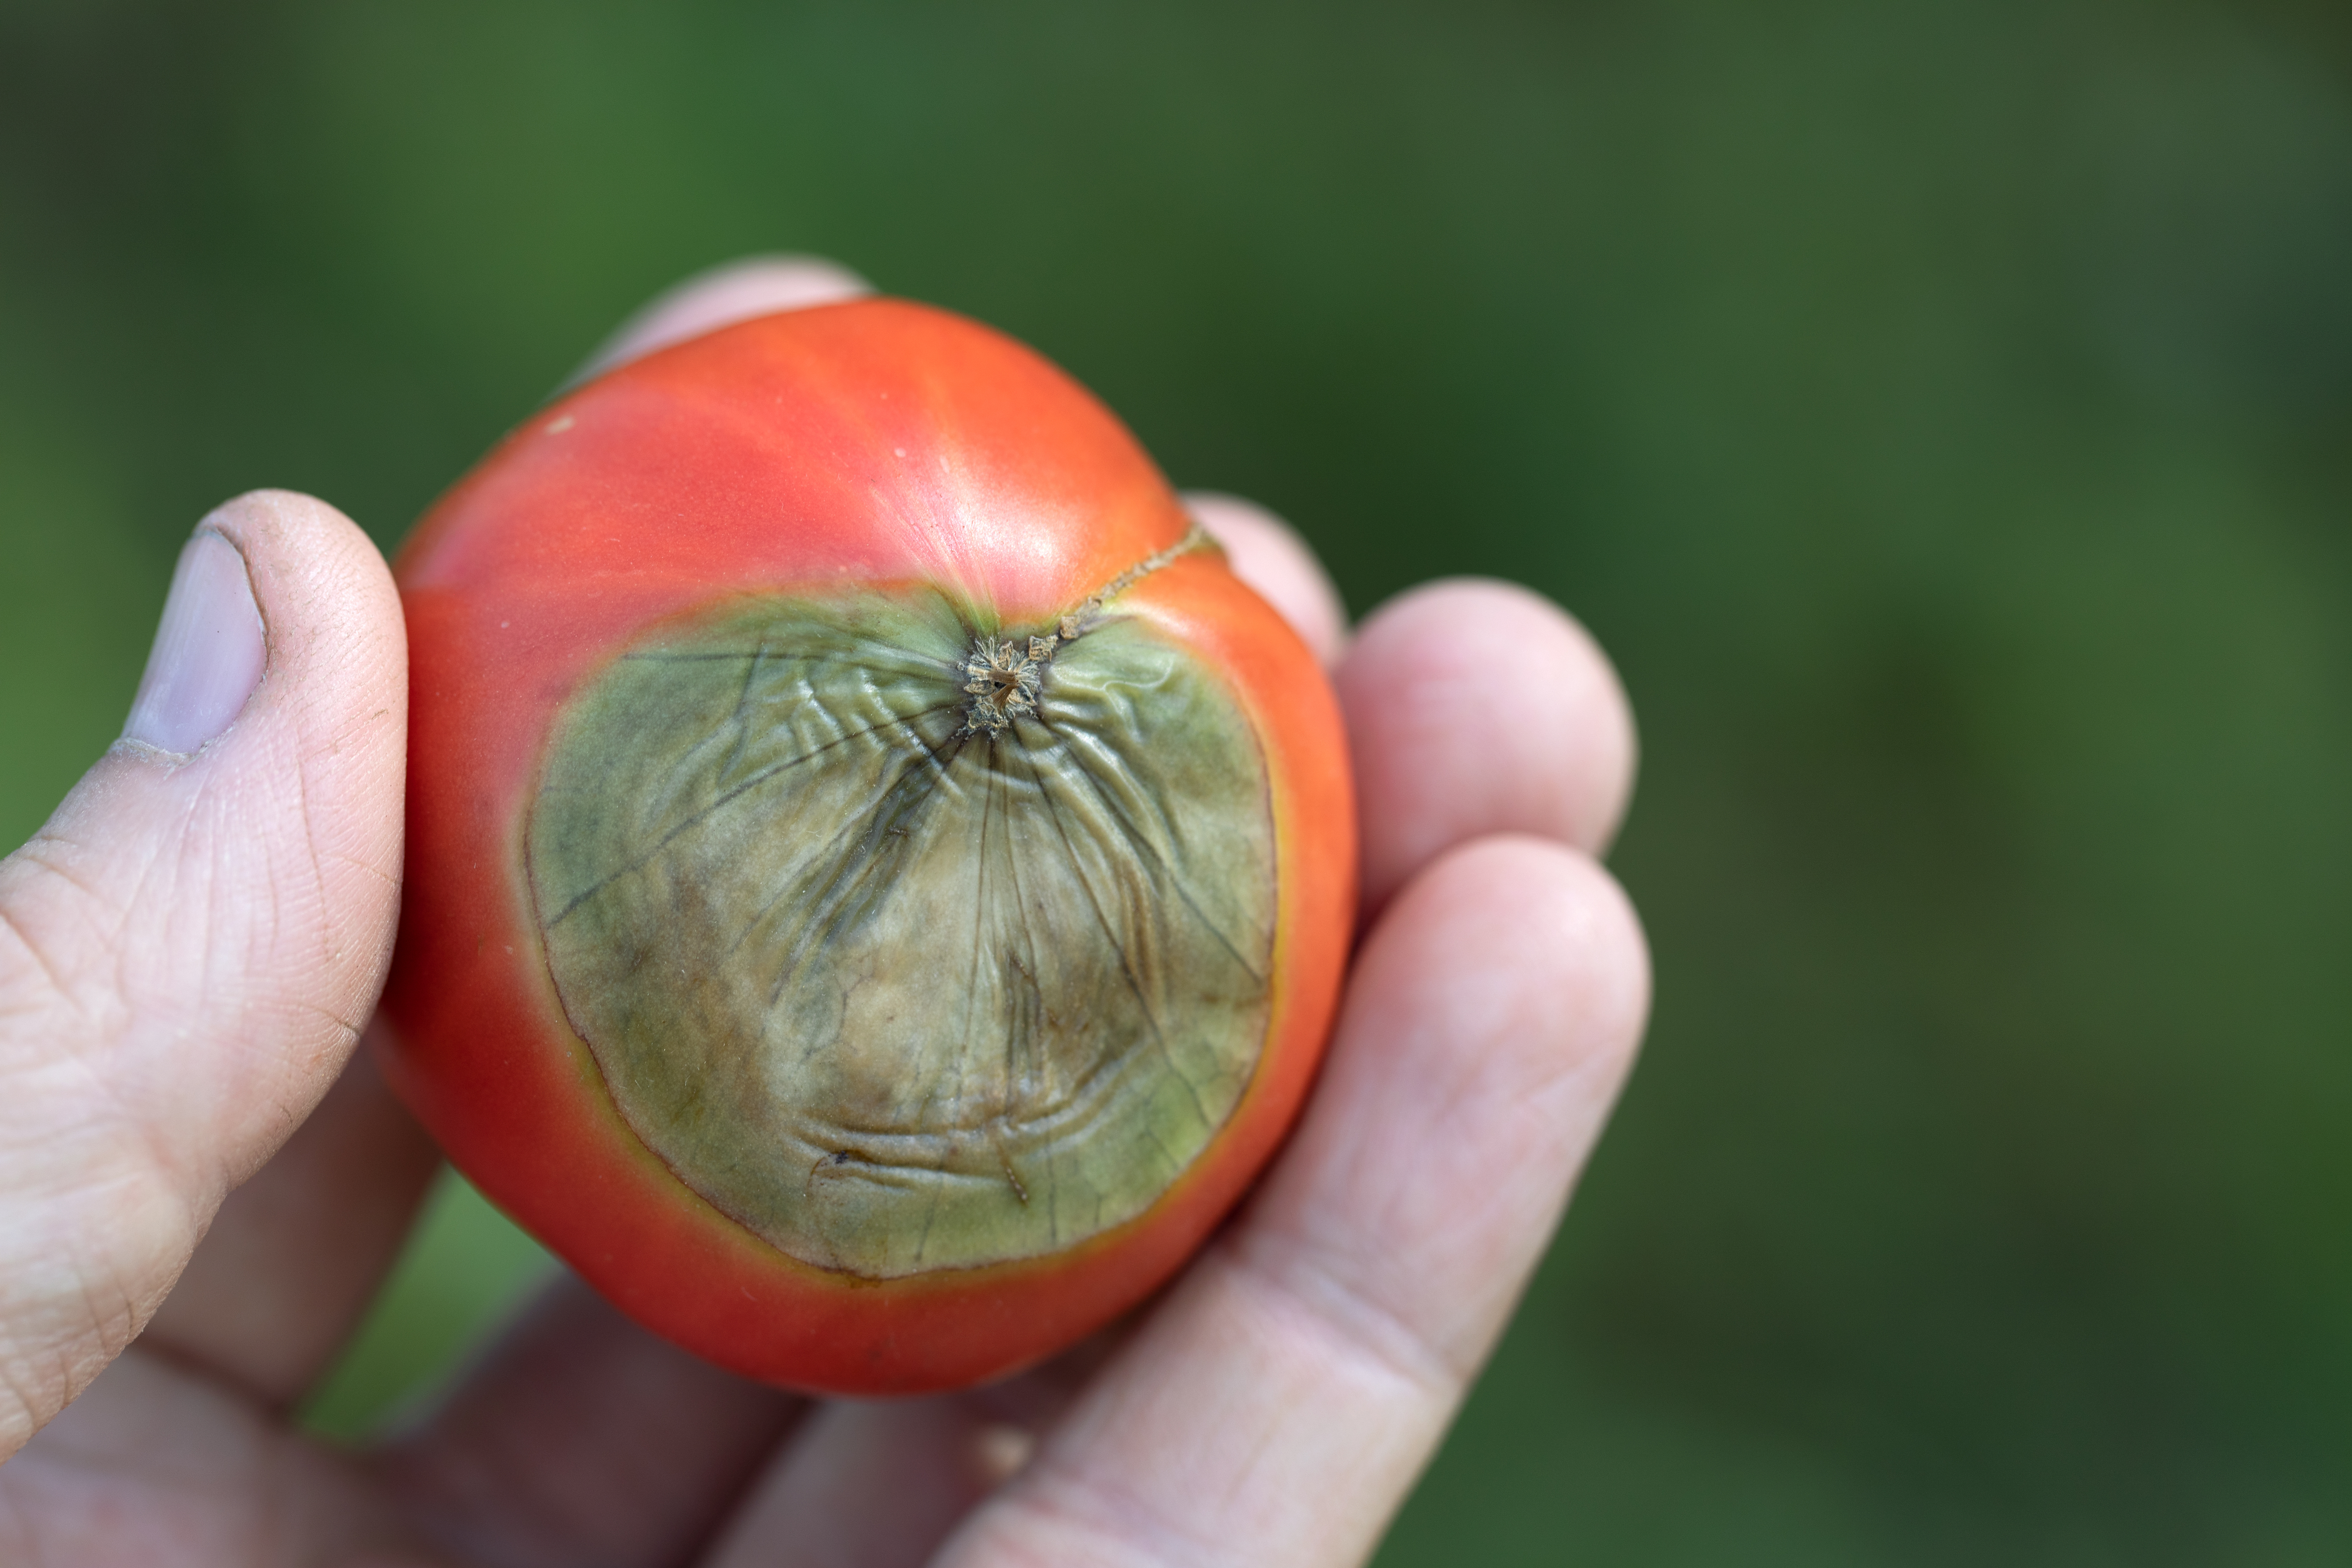 Blossom end rot is a symptom of a calcium deficiency